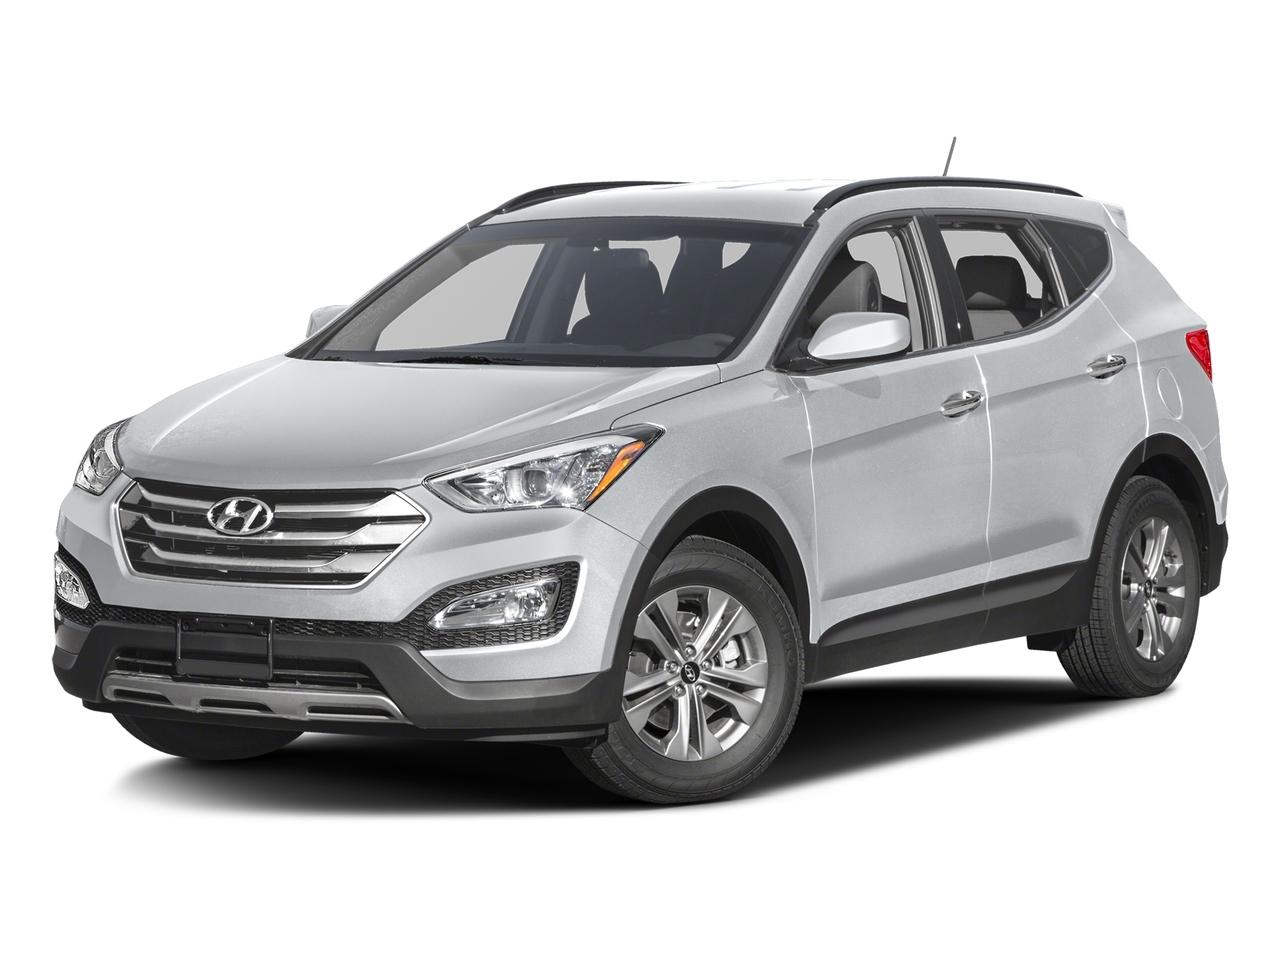 2016 Hyundai Santa Fe Sport Vehicle Photo in North Charleston, SC 29406